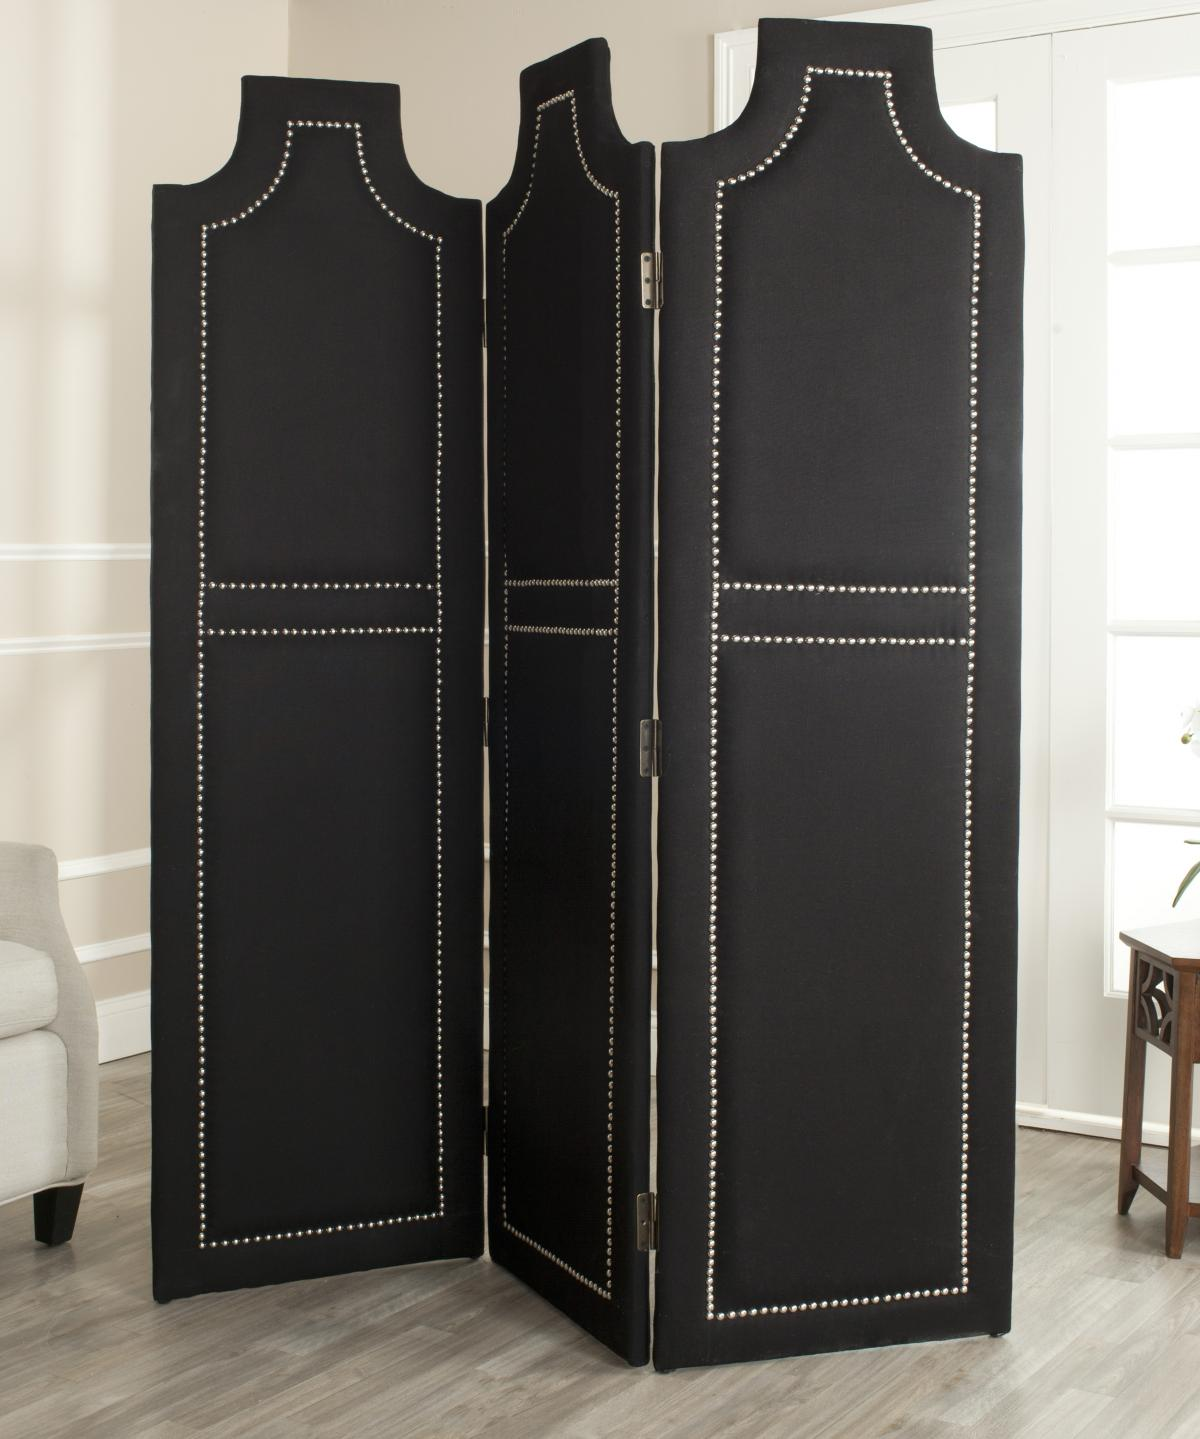 Safavieh - MCR4665A DARCY BLACK 3-PIECE FOLDING SCREEN